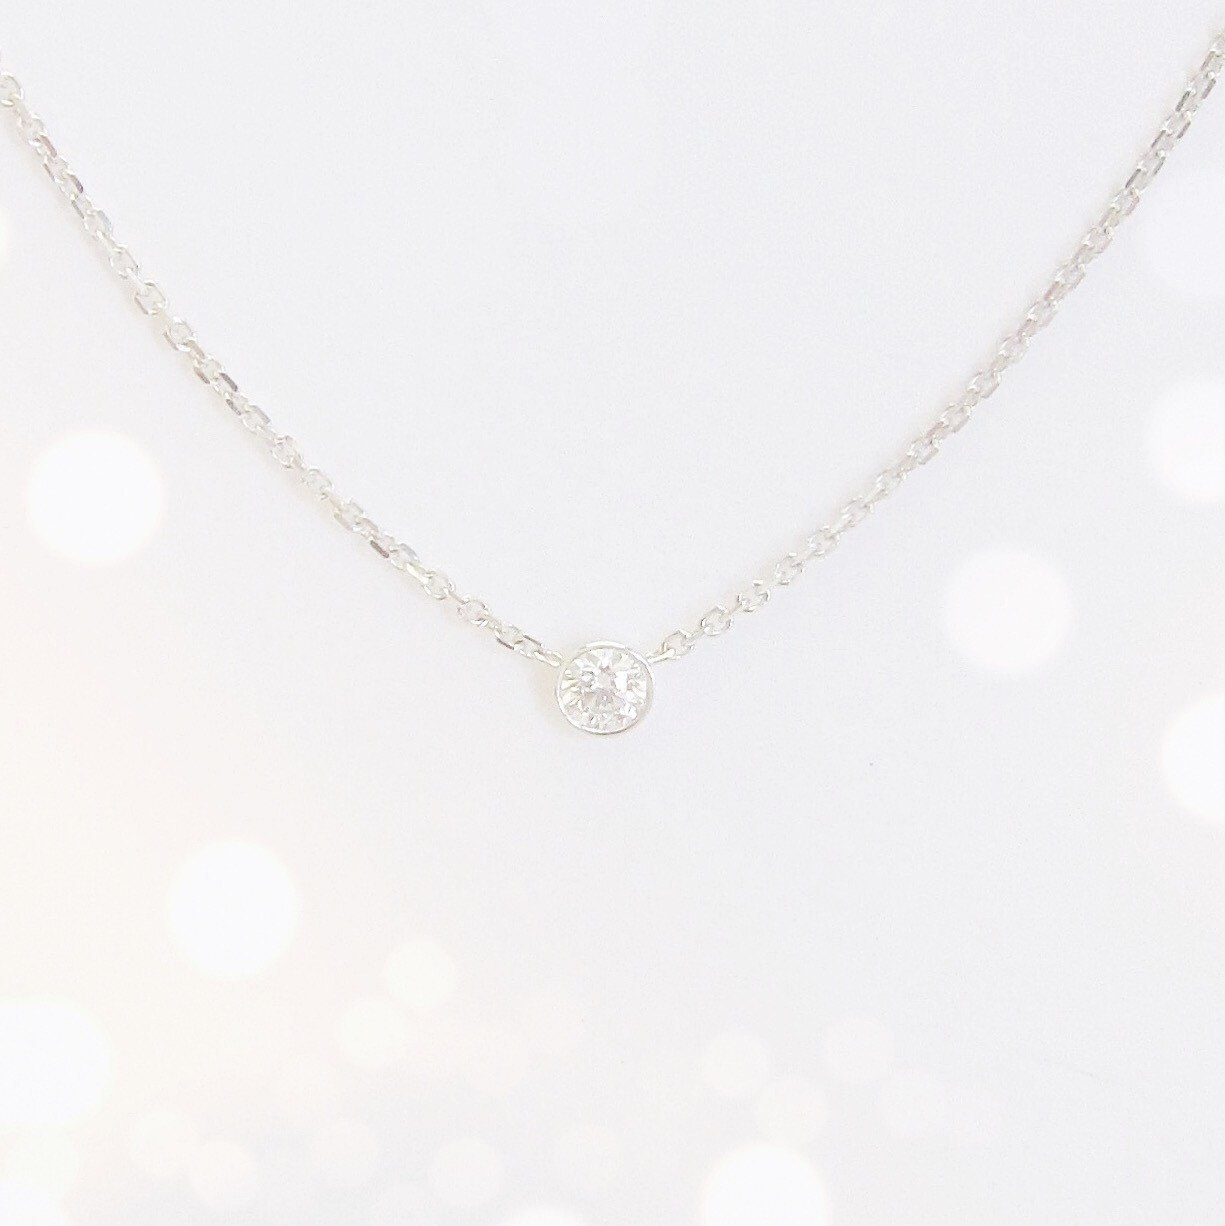 Diamond Solitaire Necklace (14k White Or Yellow Gold)